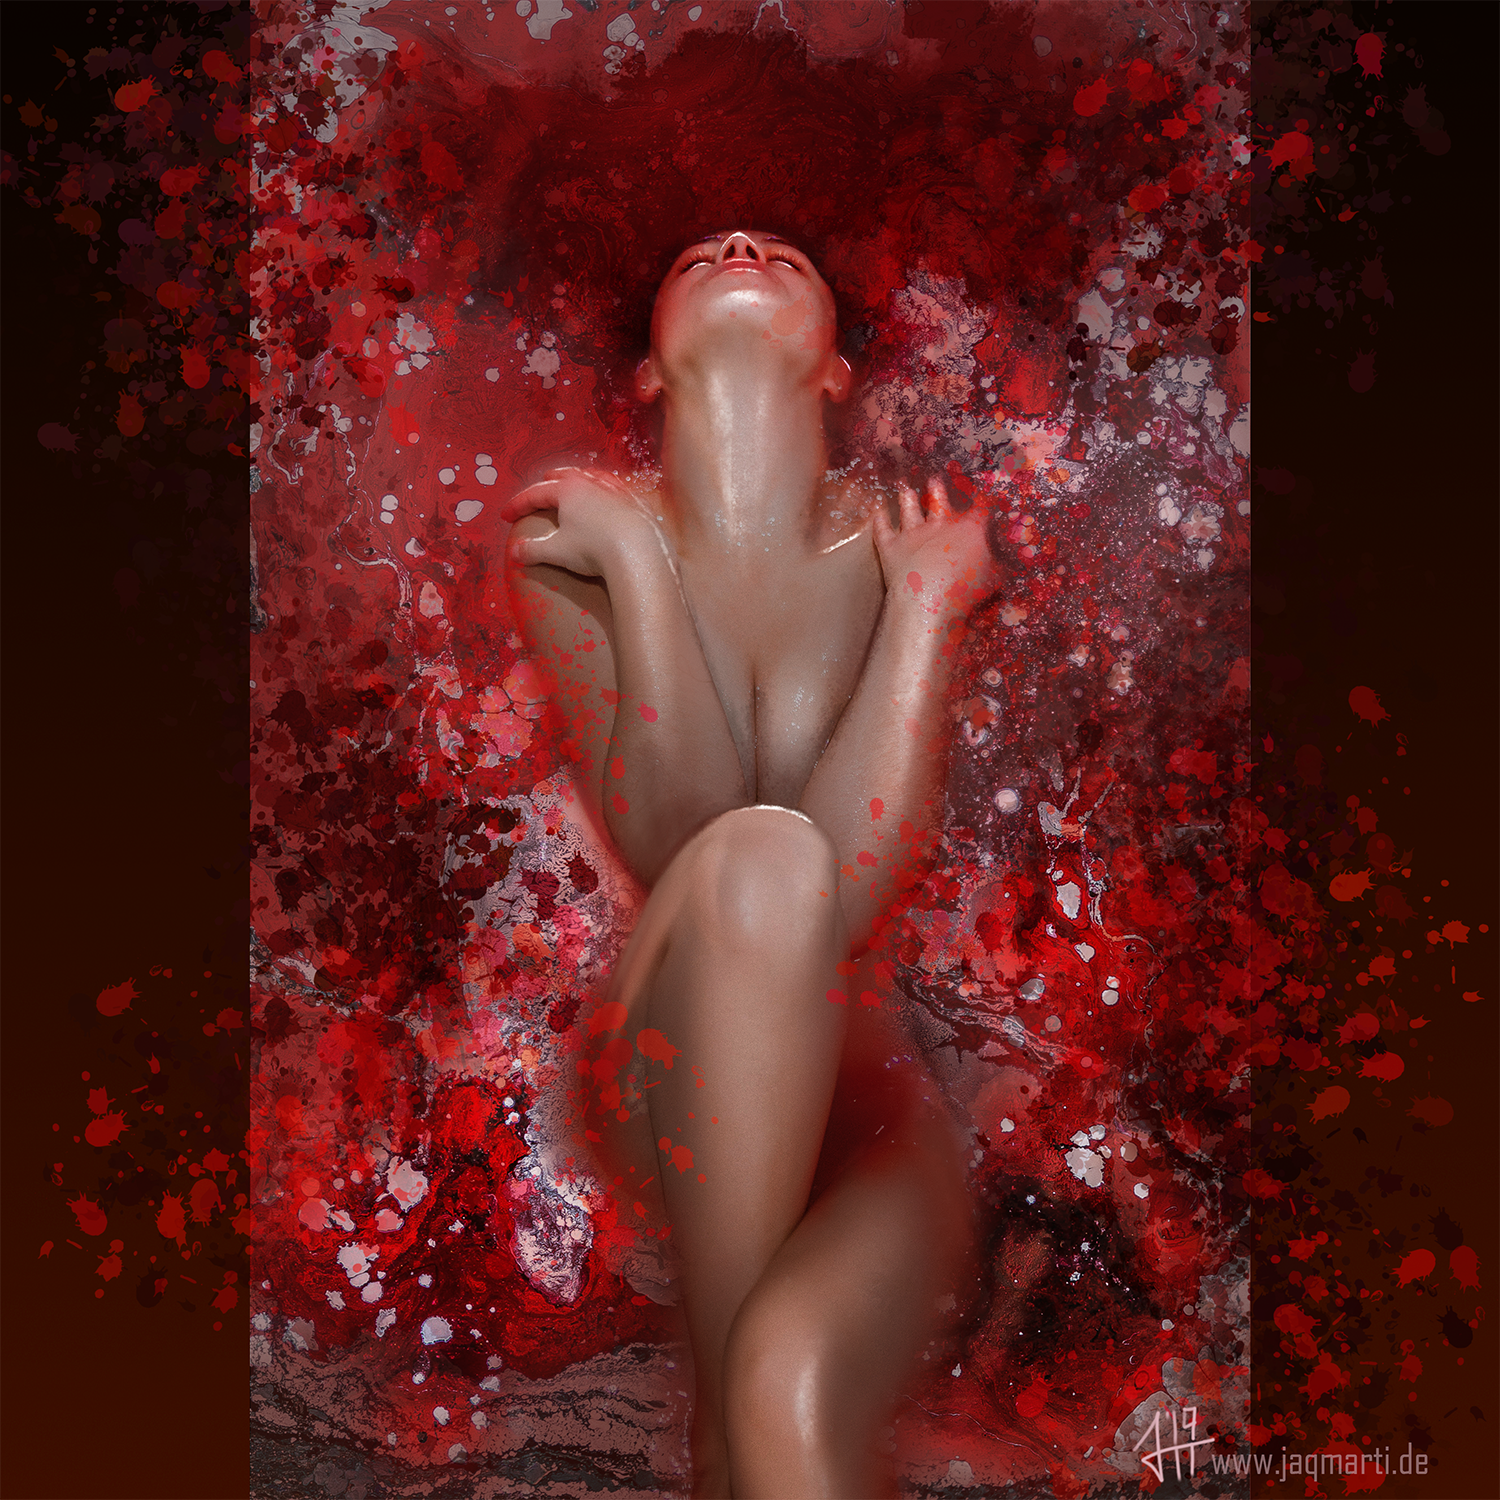 picture of a woman in red water